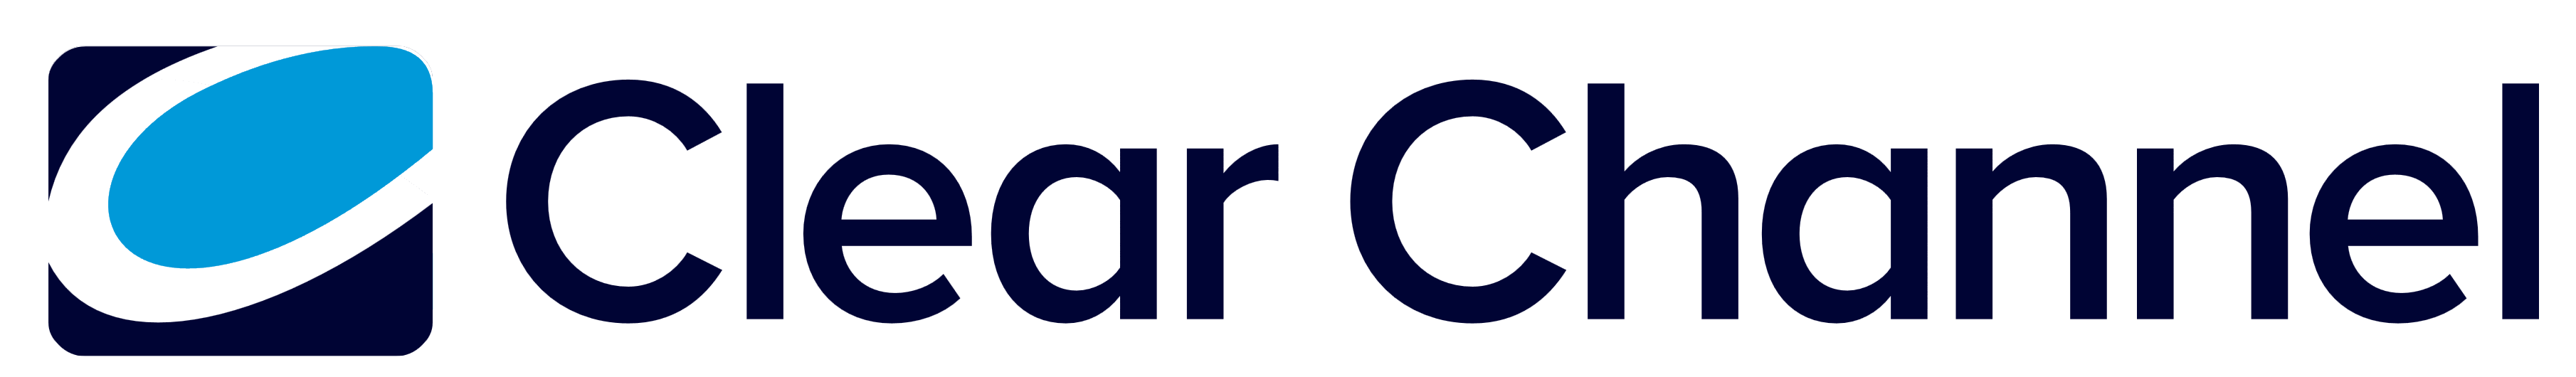 CLEAR CHANNEL PARTNER